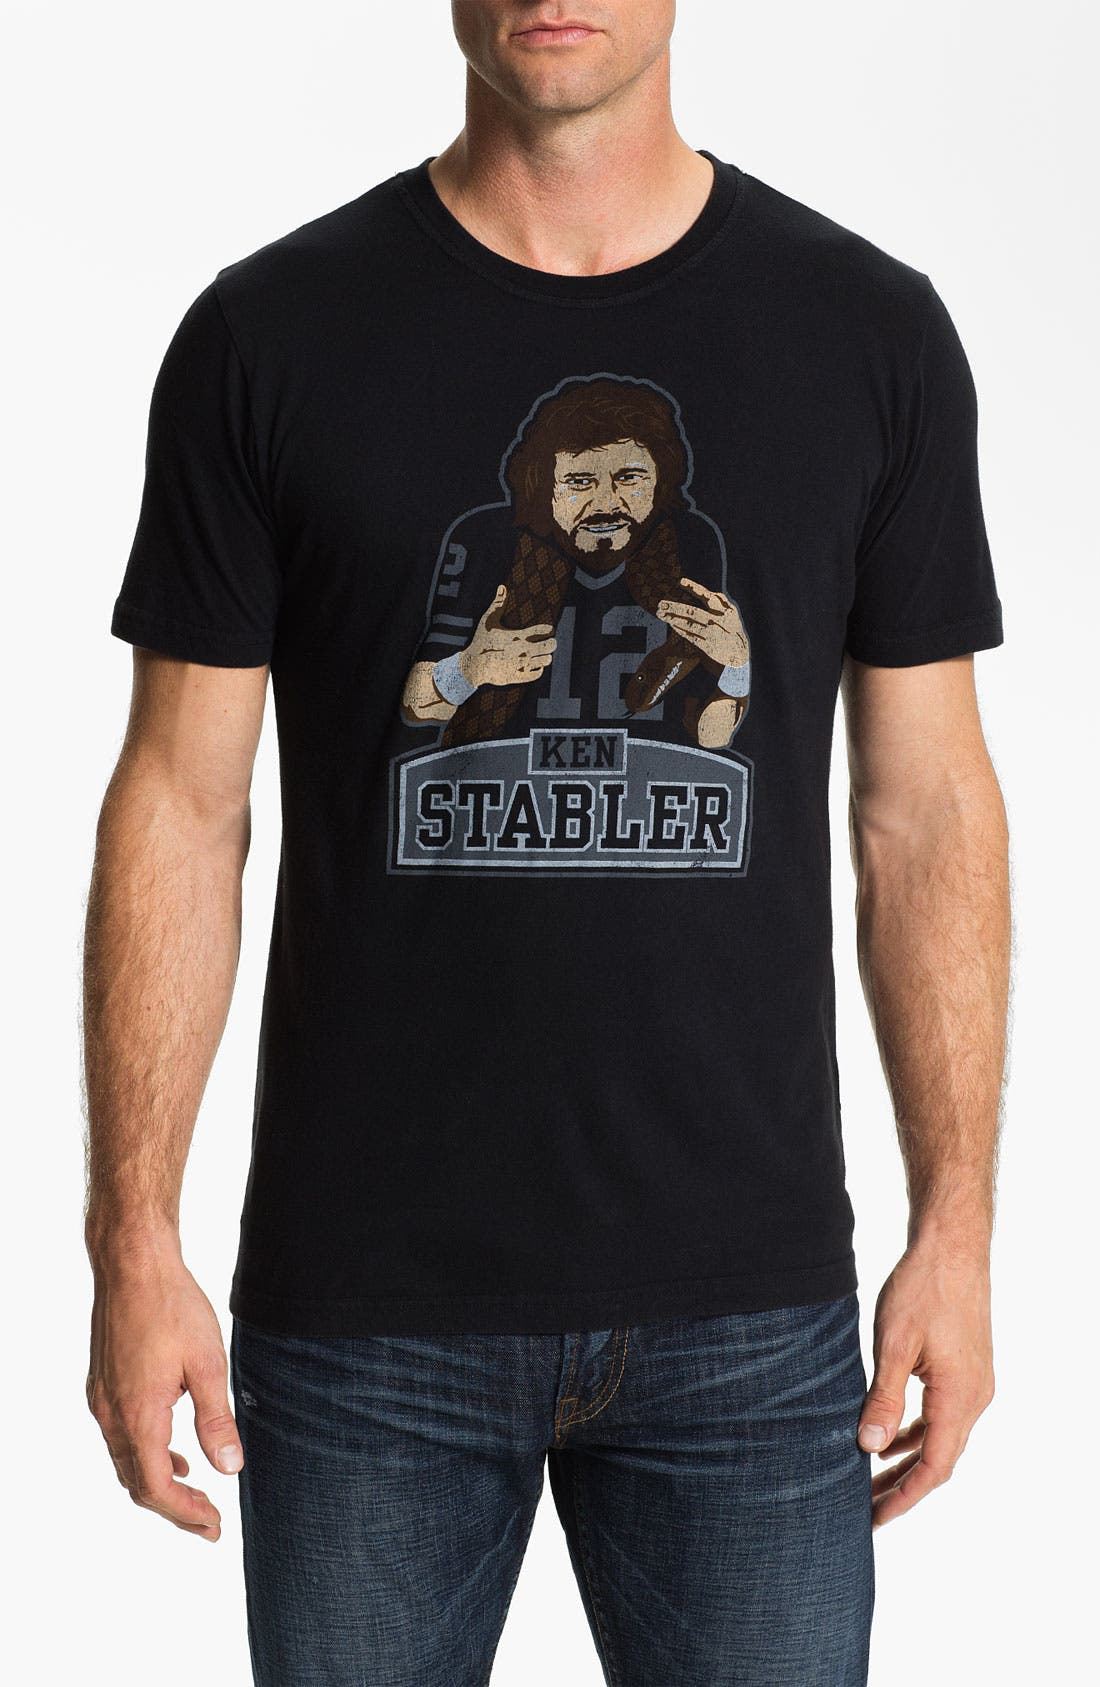 Main Image - Red Jacket 'Hyperbole - Ken Stabler' T-Shirt